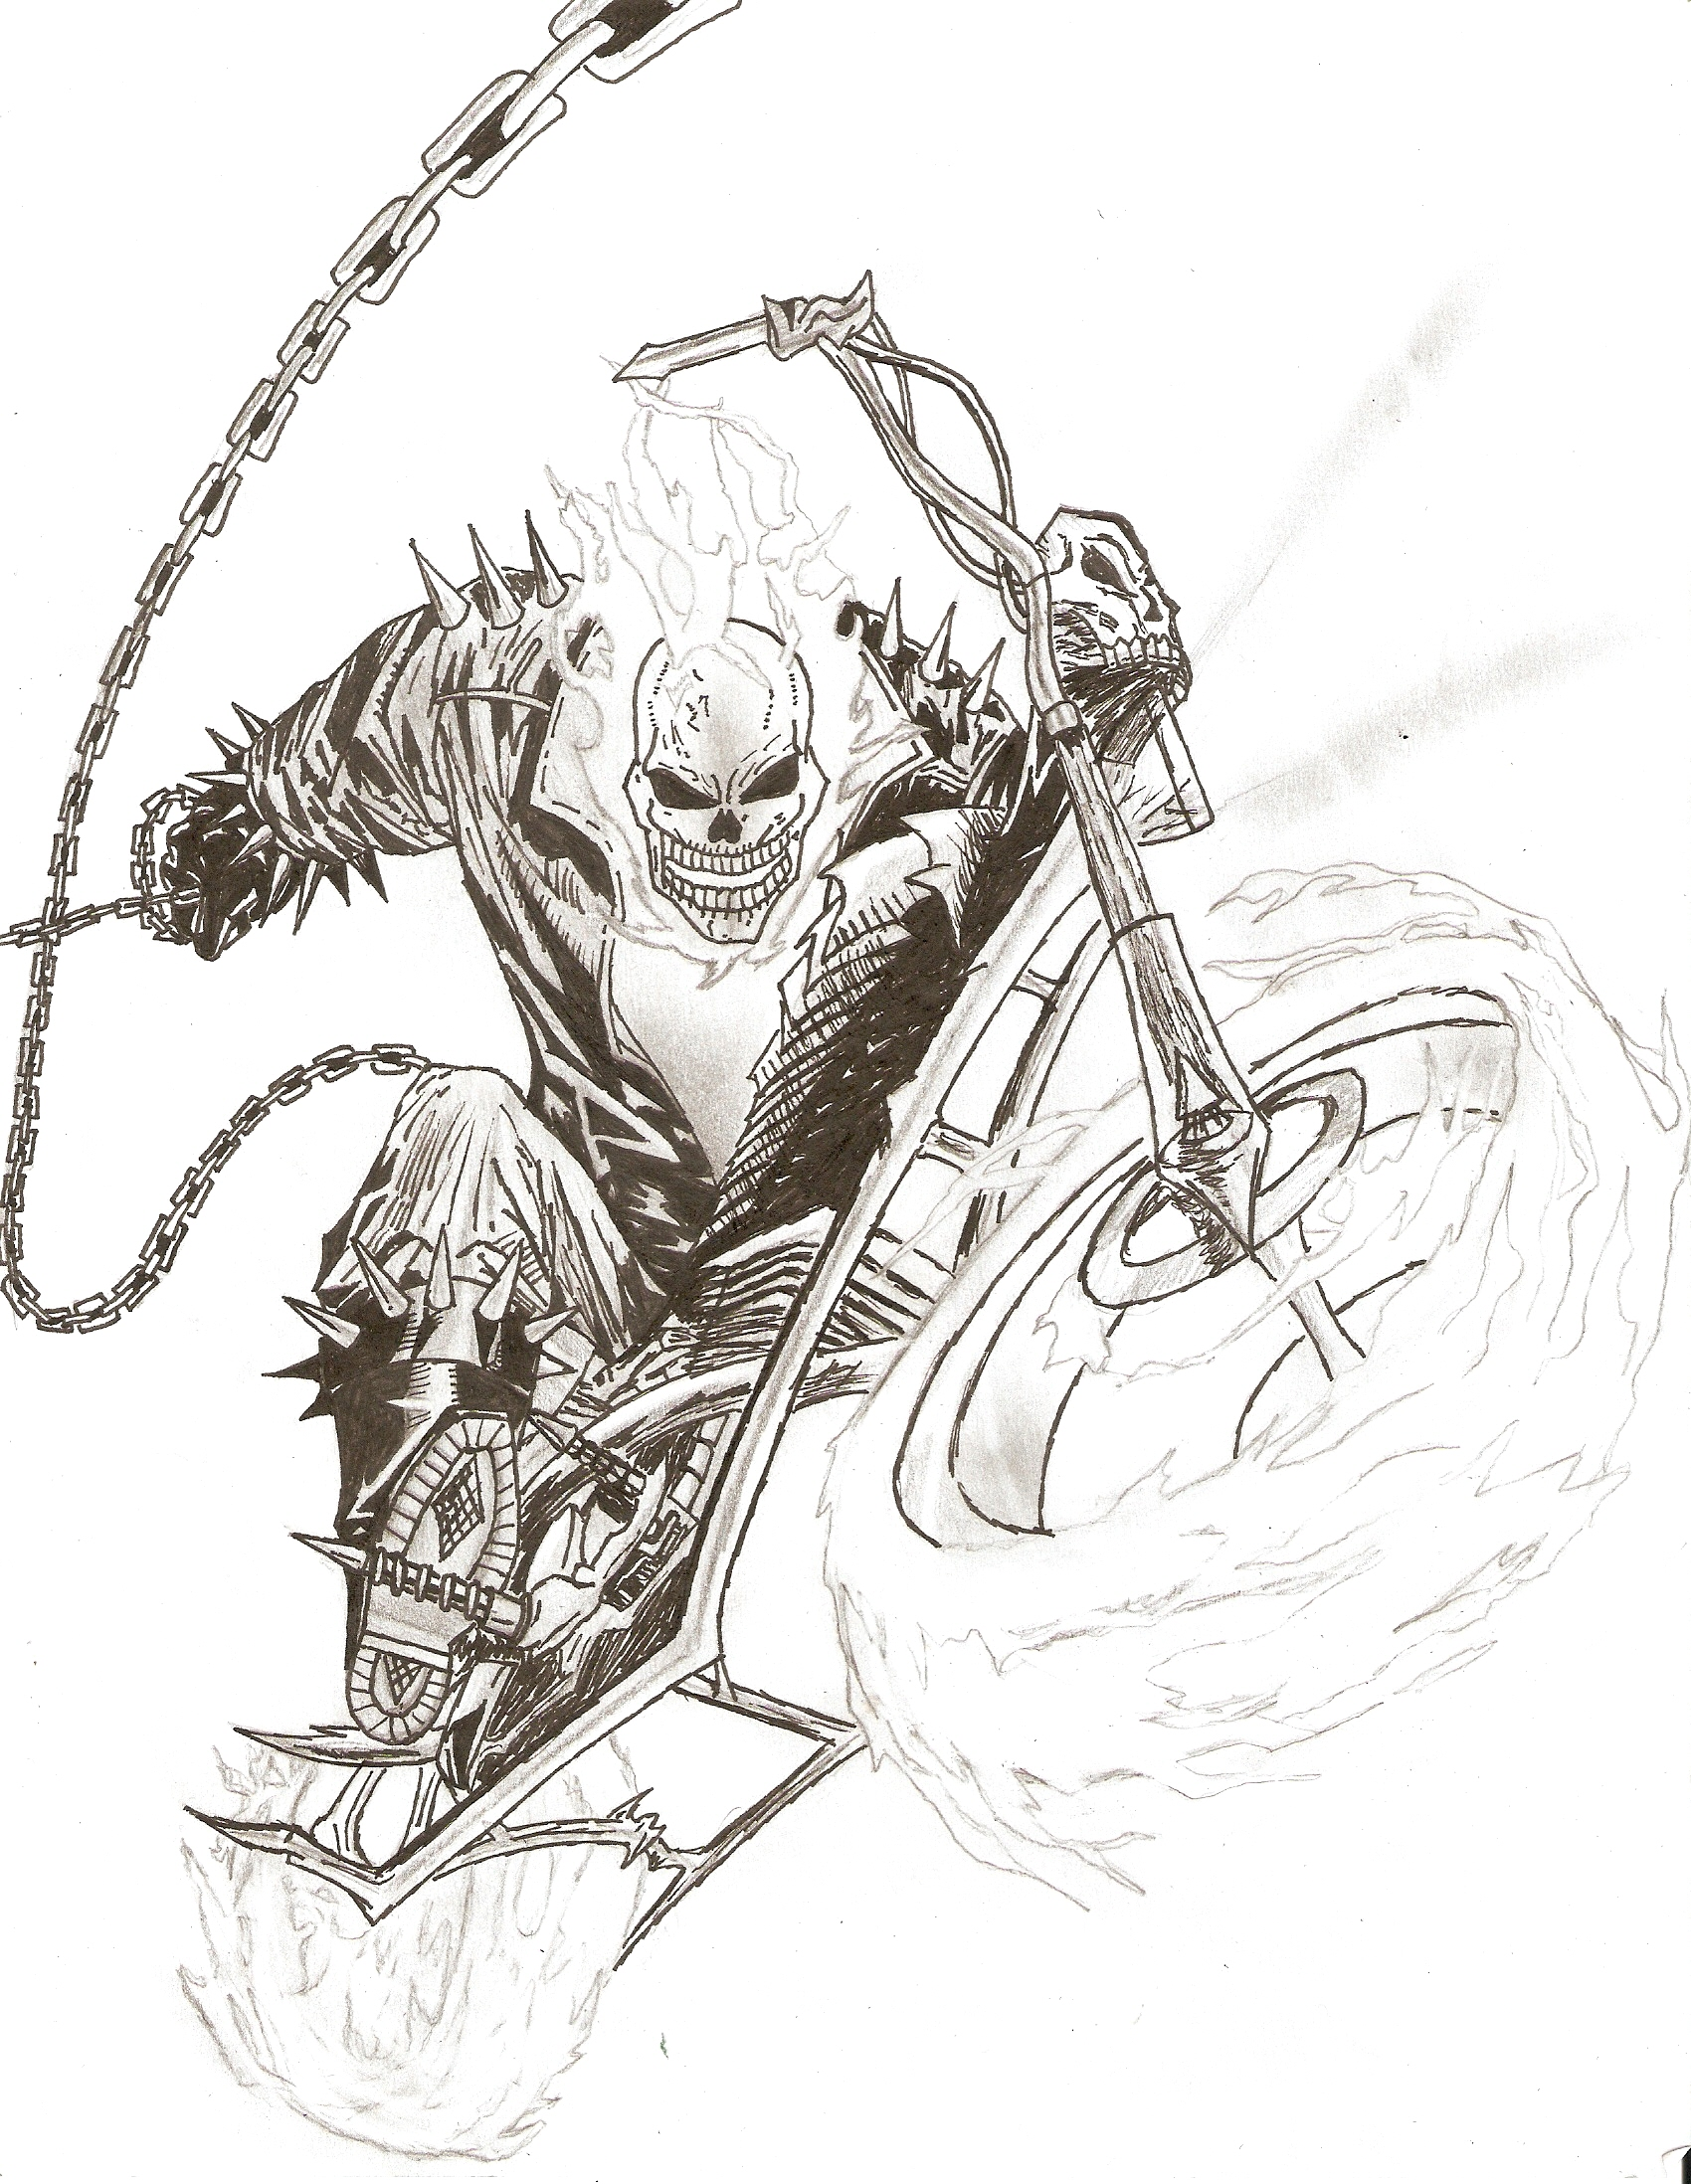 Marvels Ghost Rider By Jorgesotozzz On Deviantart